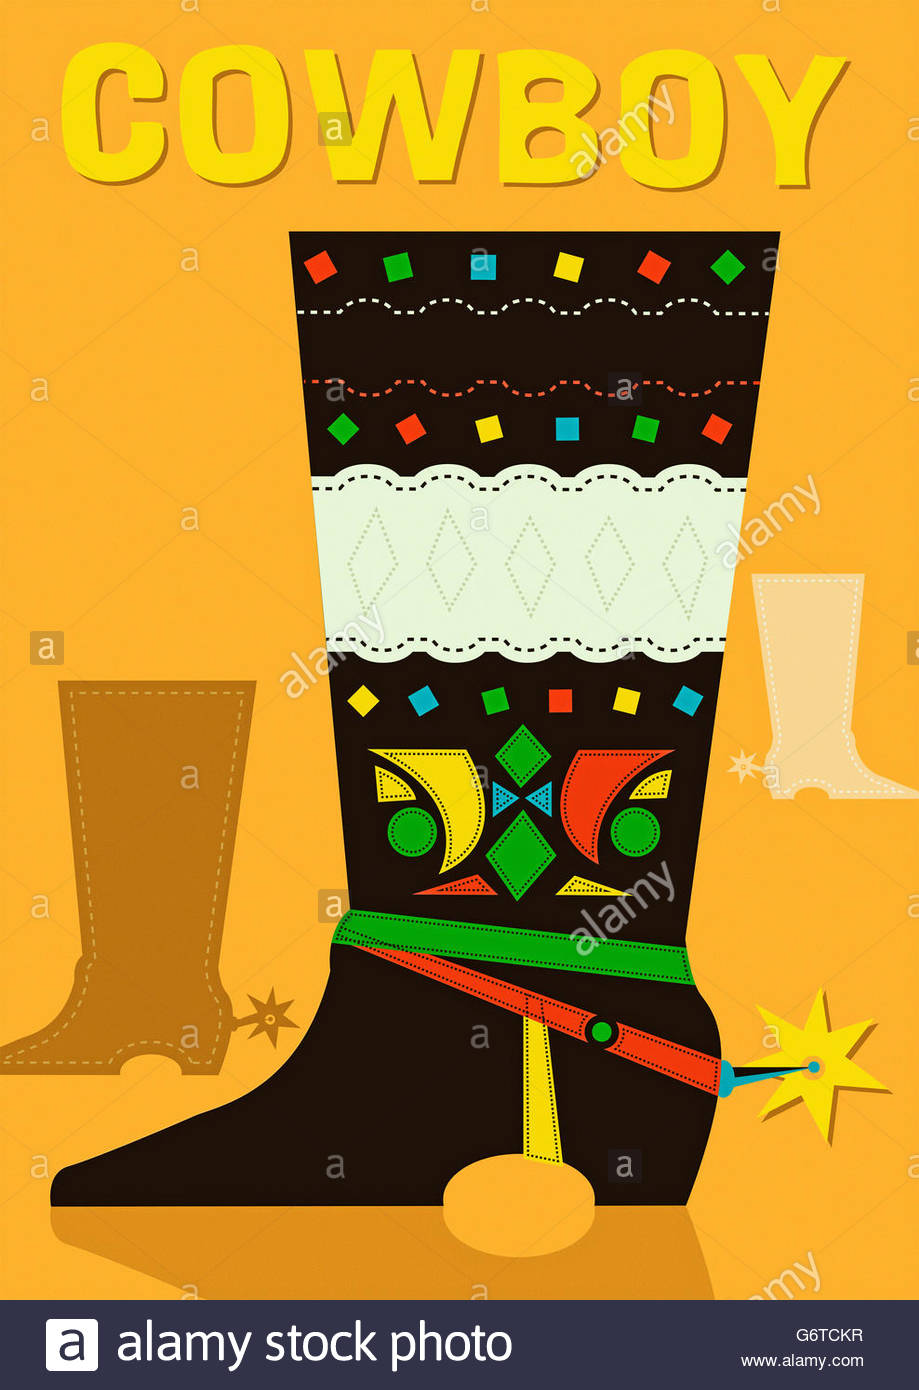 retro cowboy boot wild west american mid century illustration - Stock Image